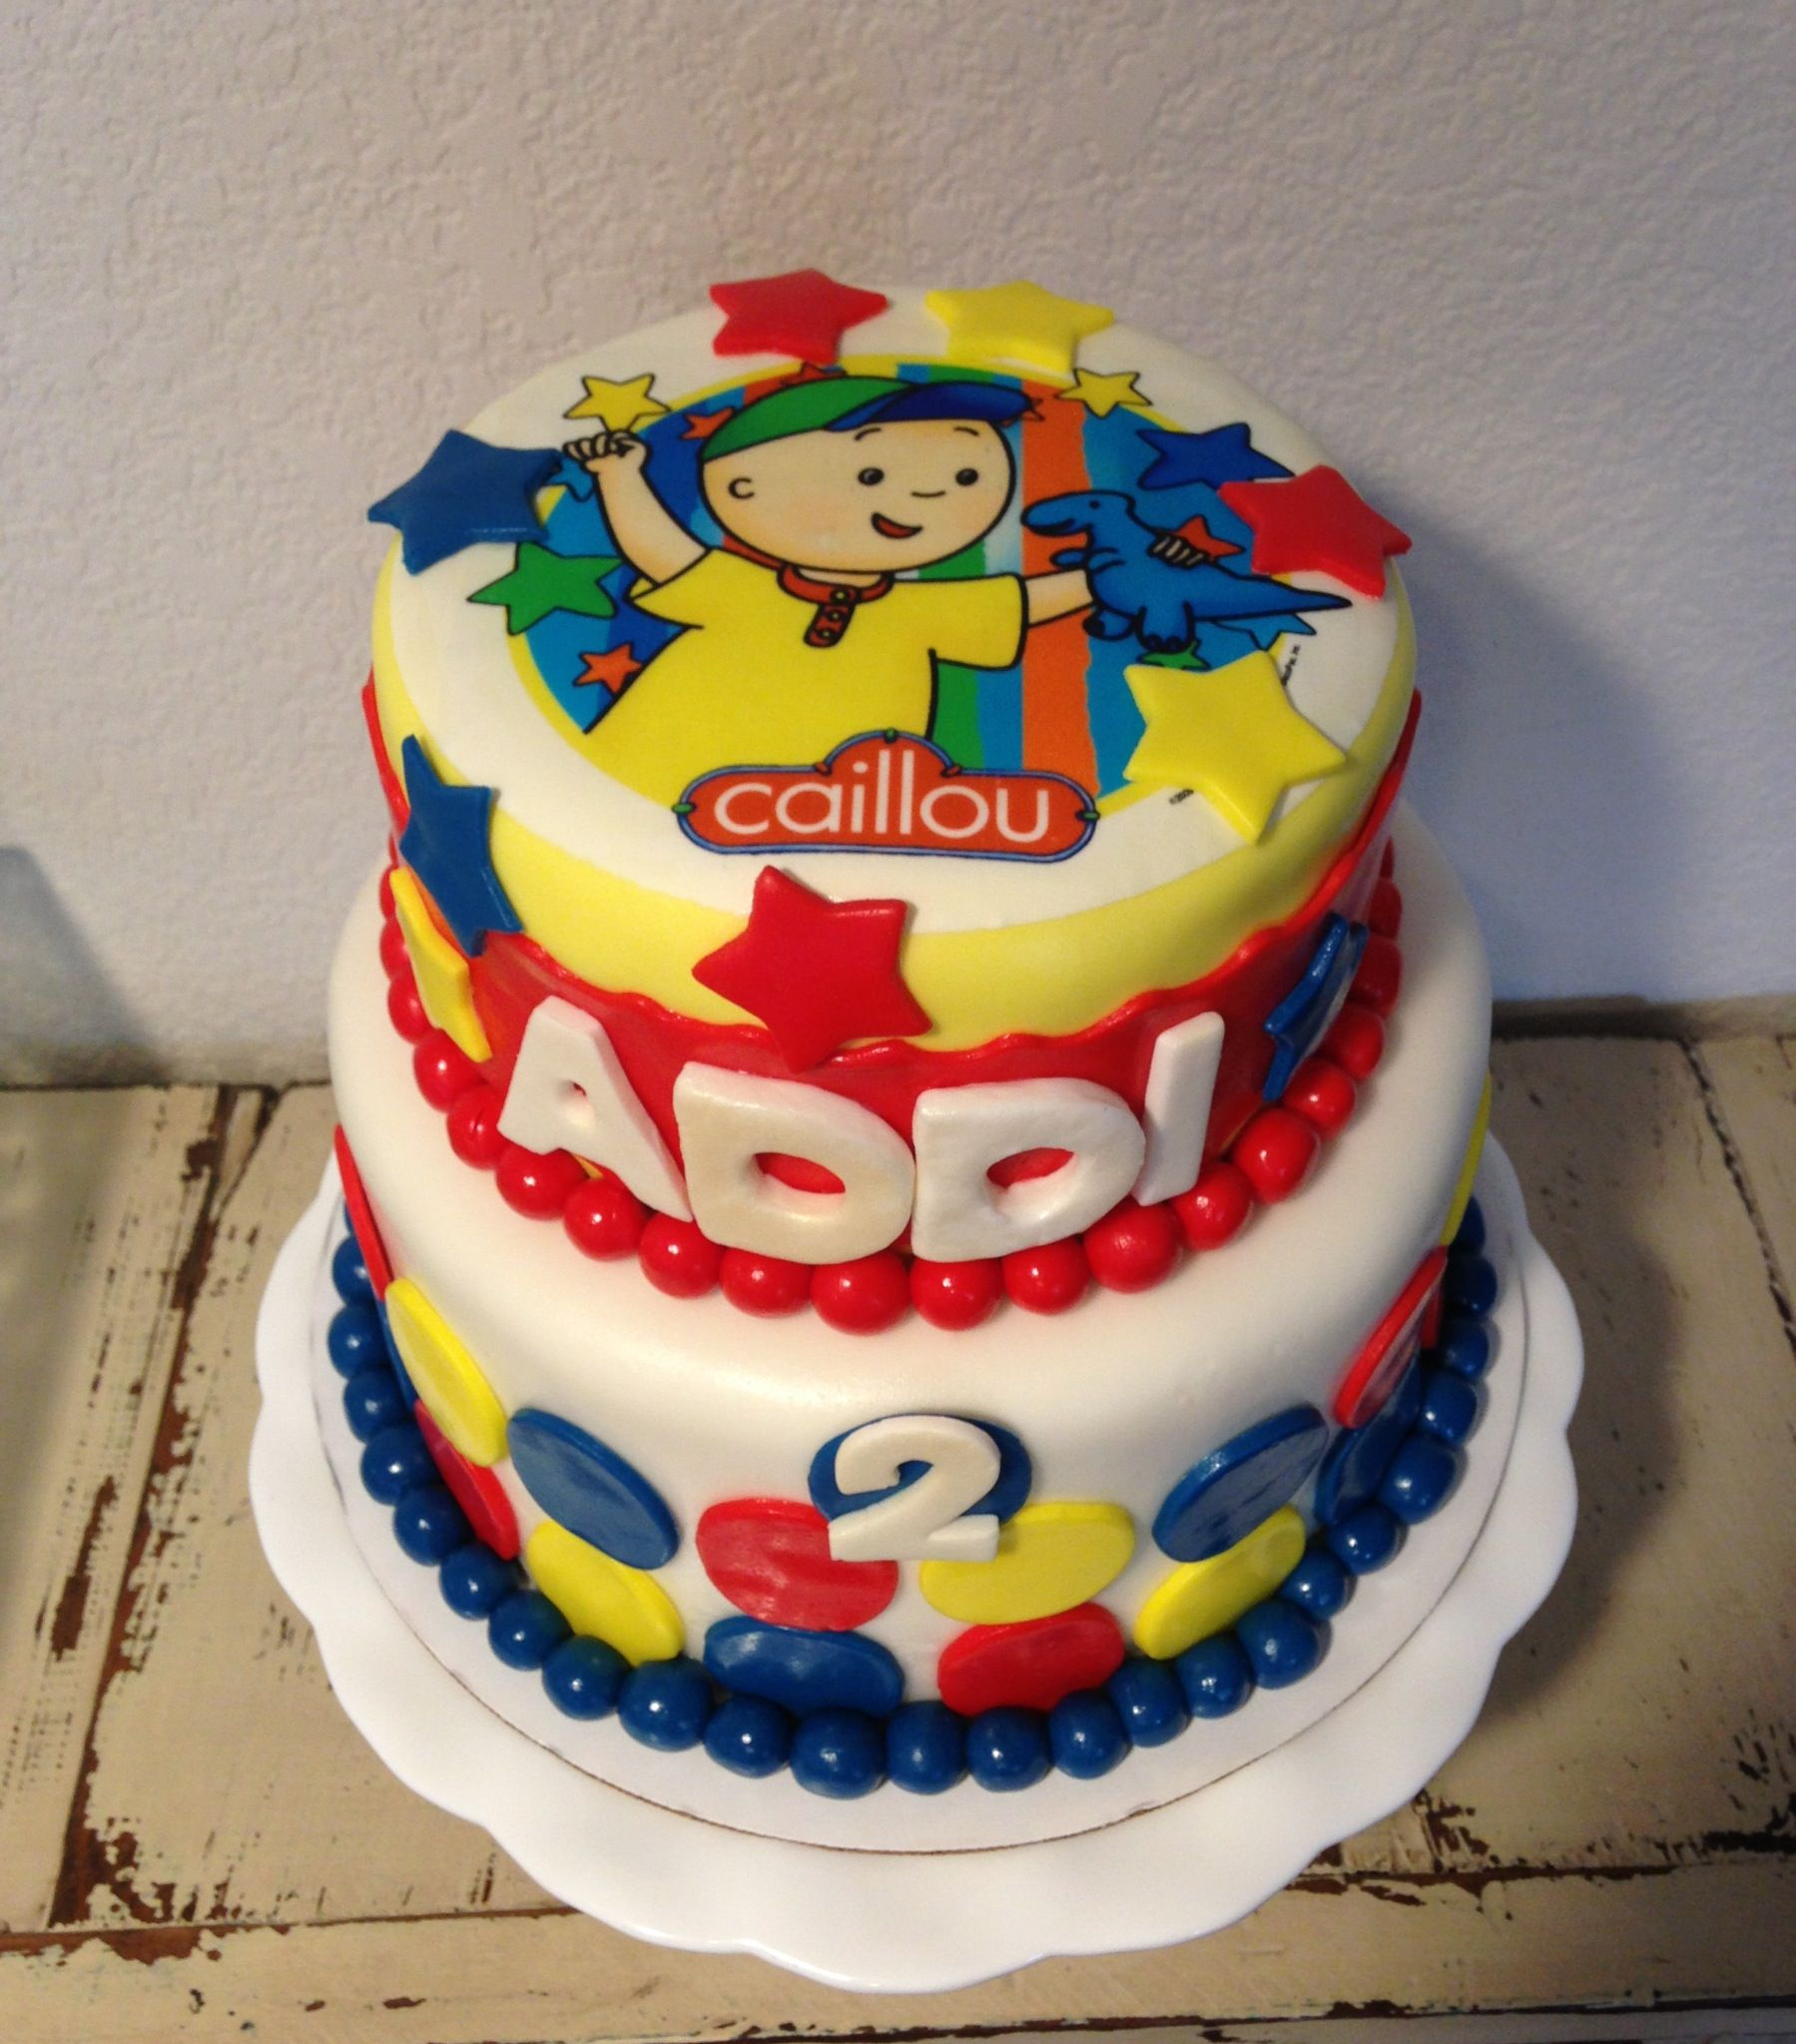 Caillou Birthday Cake KJ Takes The Cake Pinterest Caillou